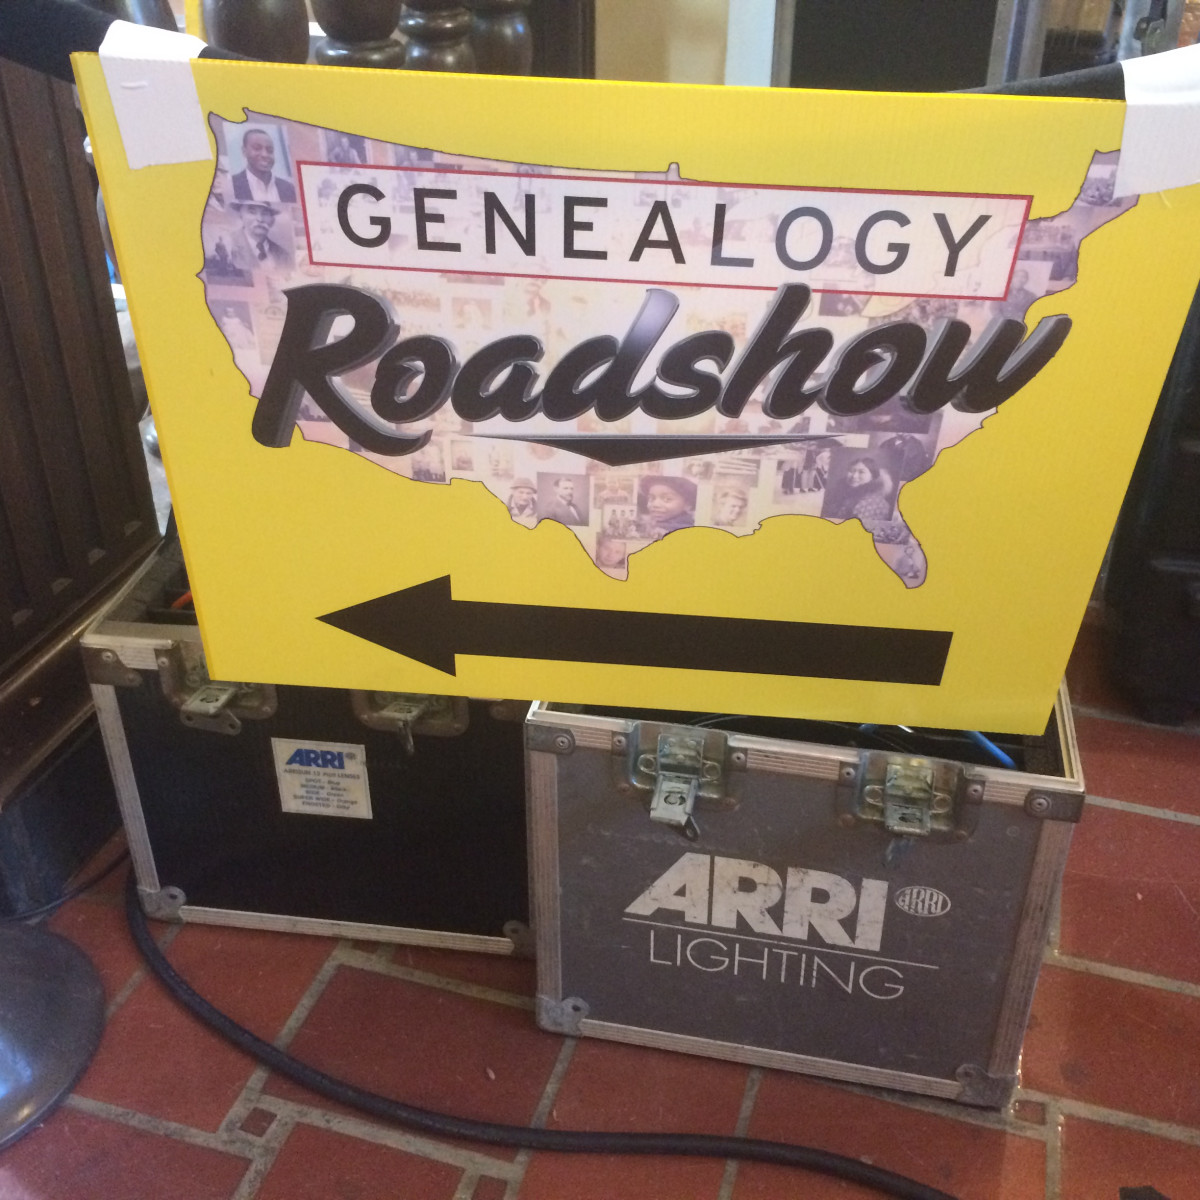 Genealogy Roadshow sign at Julia Ideson Building